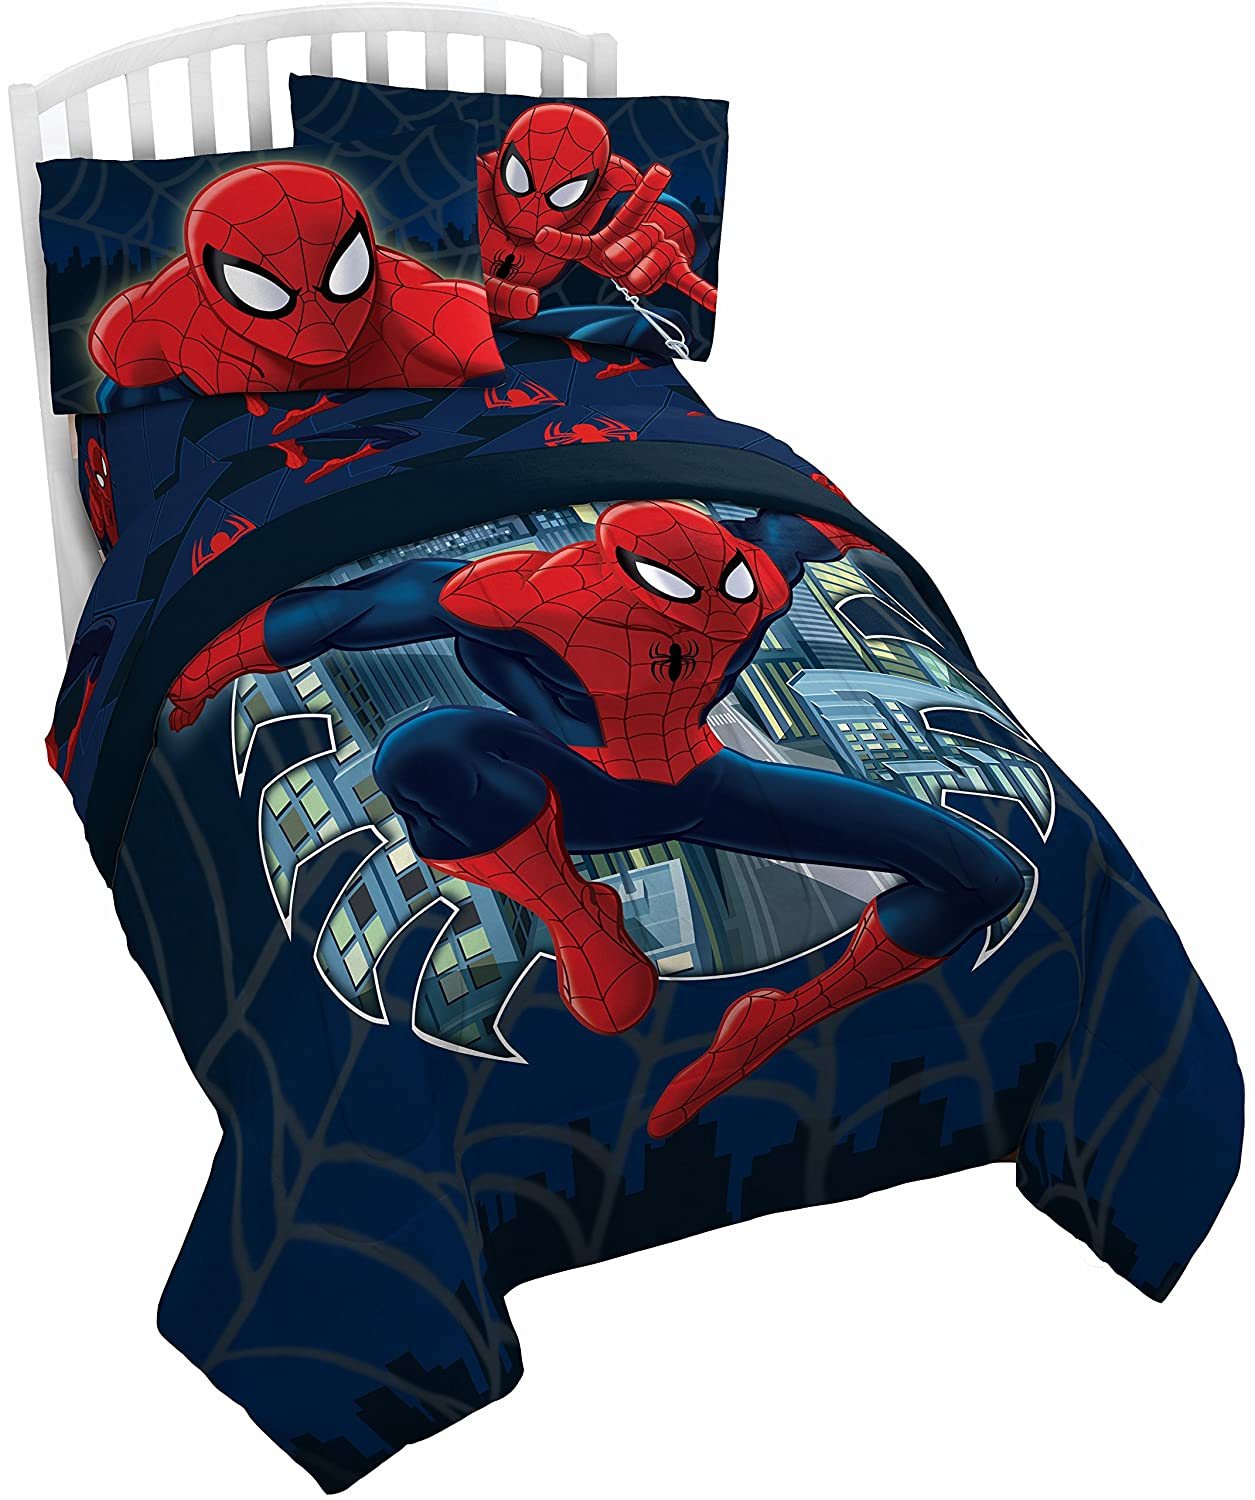 0bc81d3c2eaec Marvel Spider Man Saving the Day Twin/Full Comforter - Super Soft Kids  Reversible Bedding features Spiderman - Fade Resistant Polyester Microfiber  ...